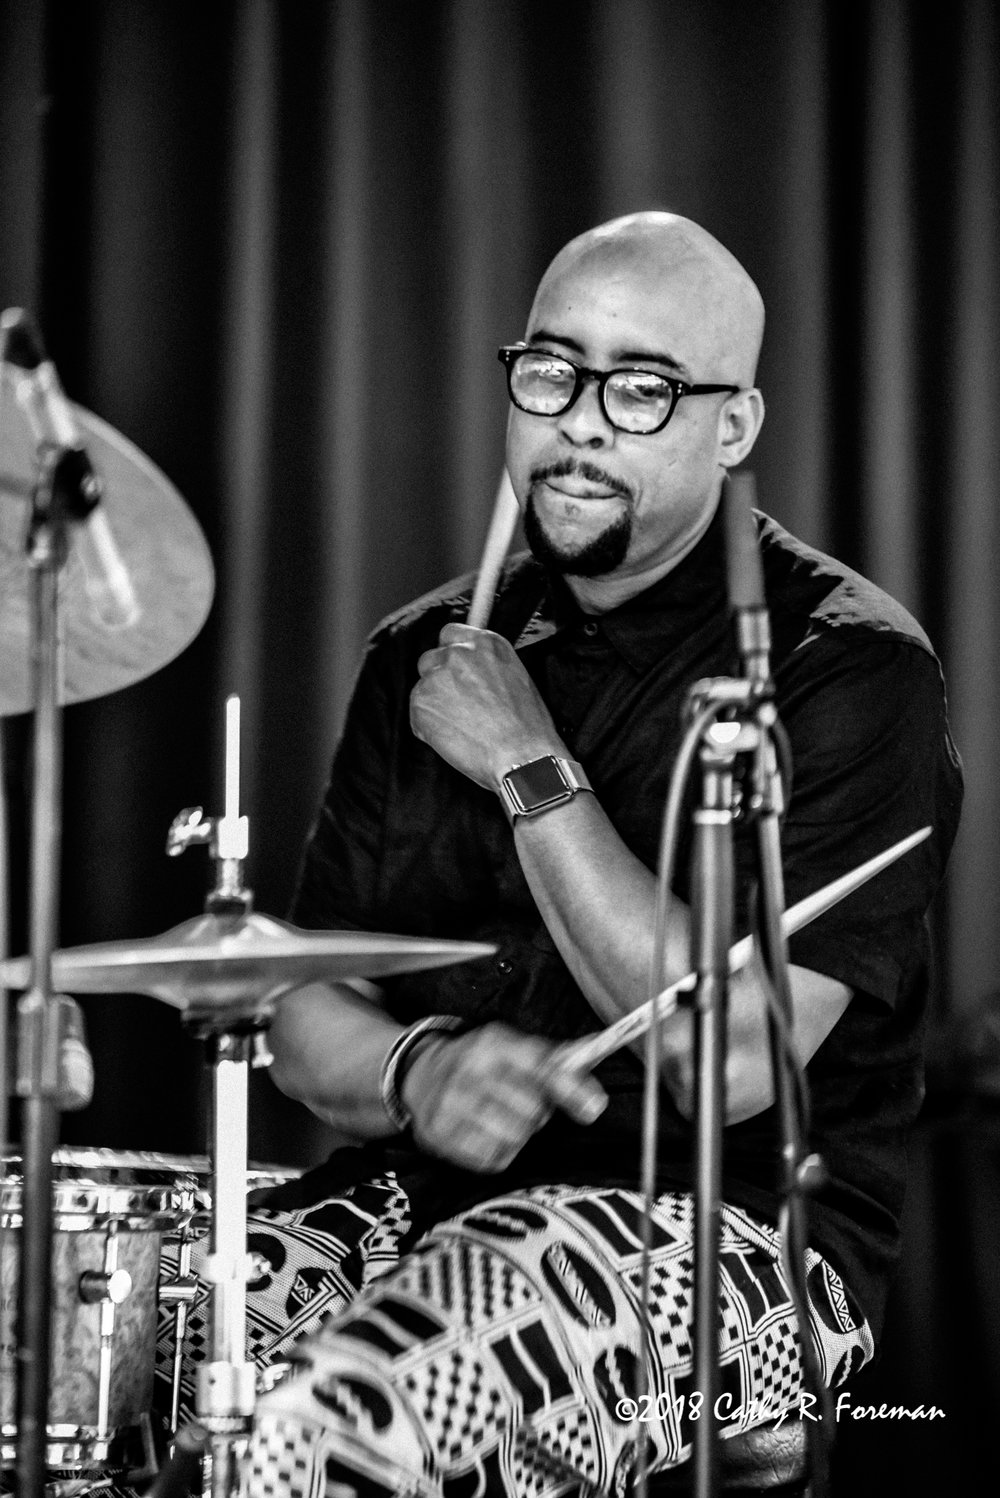 Henry Conway III at the 2018 Richmond Jazz Festival - Image by: Cathy R. Foreman